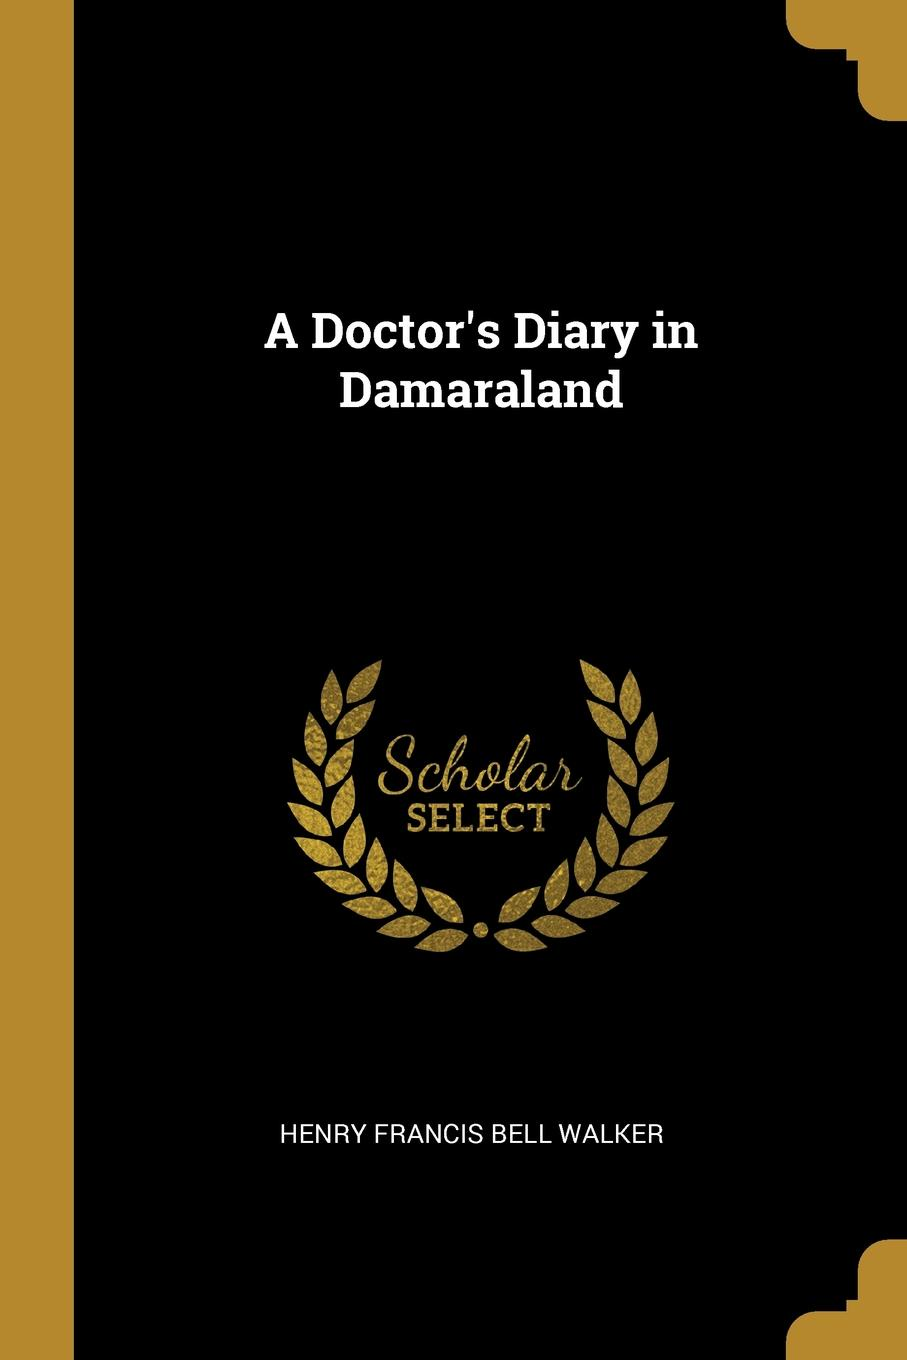 A Doctor.s Diary in Damaraland